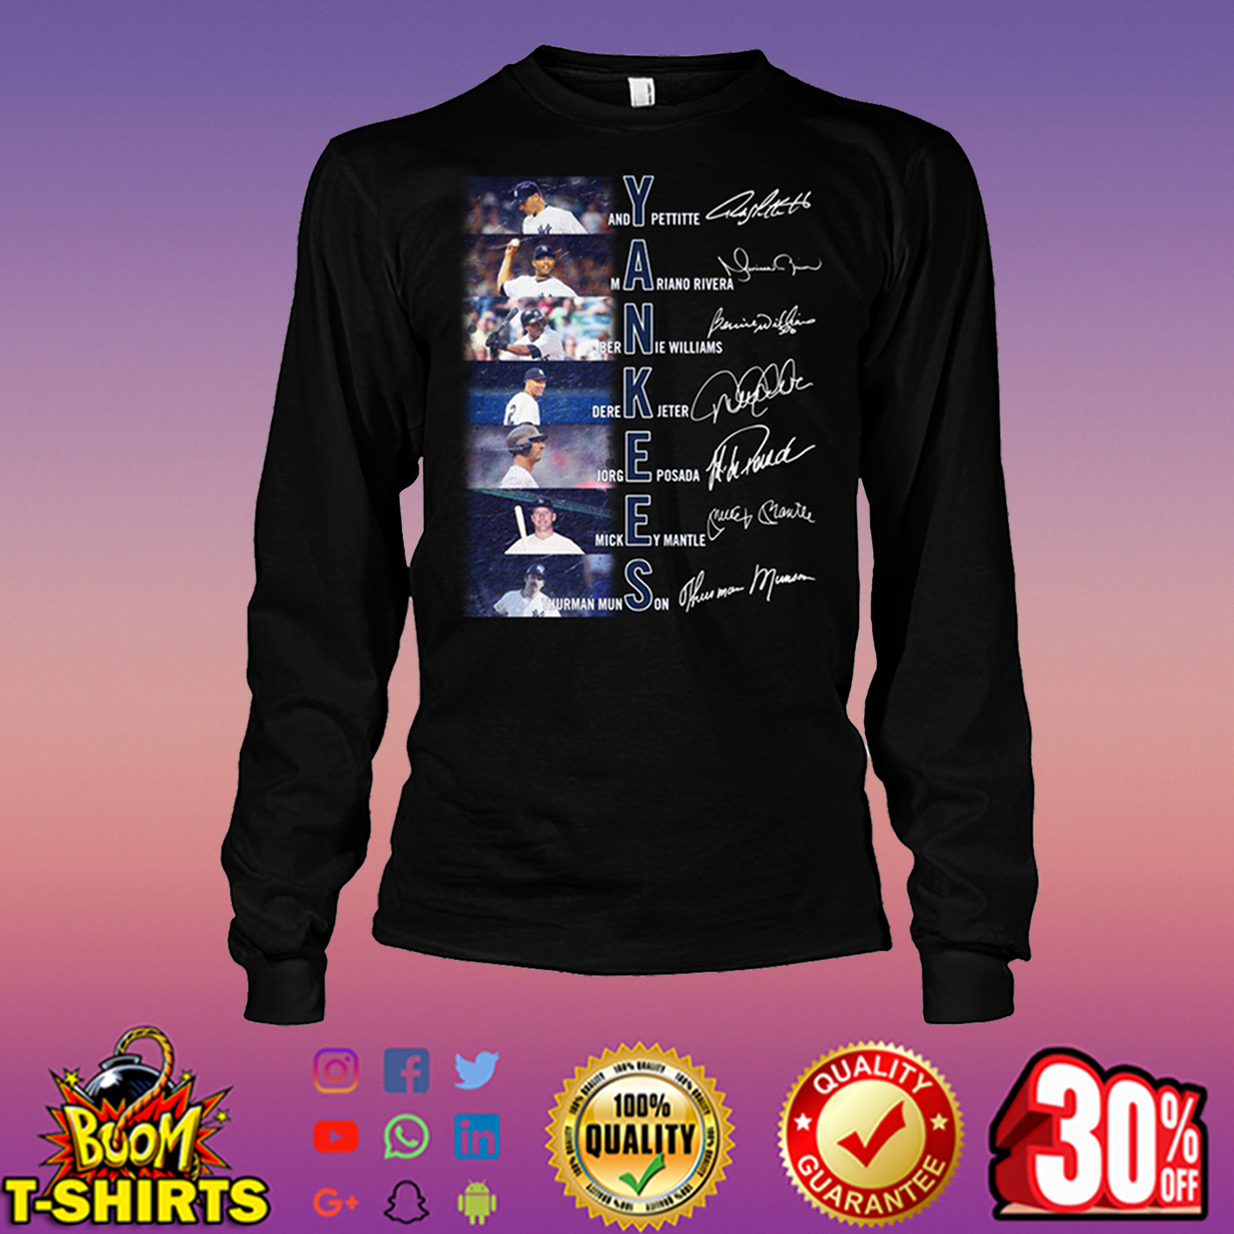 Yankees Andy Pettitte Mariand Rivera Bernie Williams Derek Jeter signature long sleeve